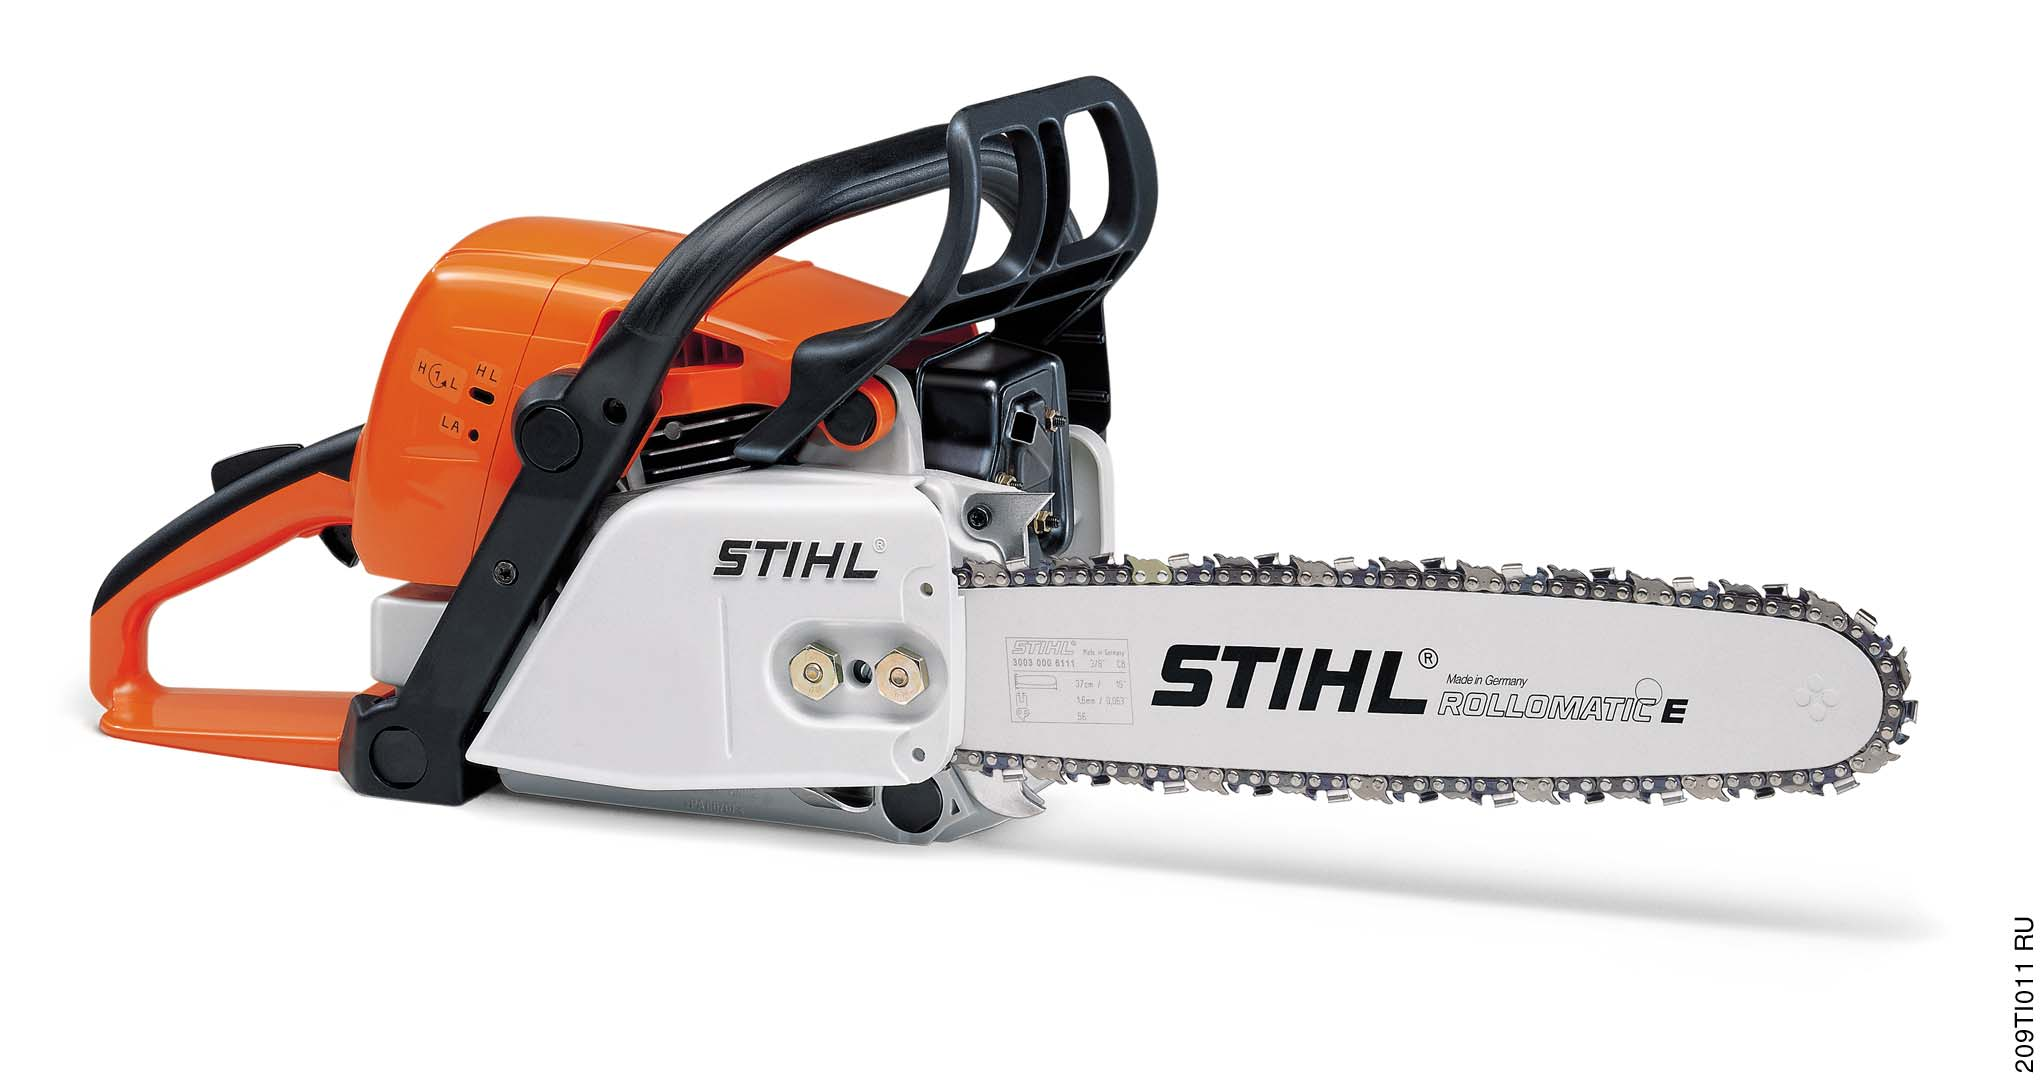 STIH) STIHL MS 290, 310, 390 Instruction Manual Manual de instrucciones Read and follow all safety precautions in Instruction Manual improper use can cause serious or fatal injury.